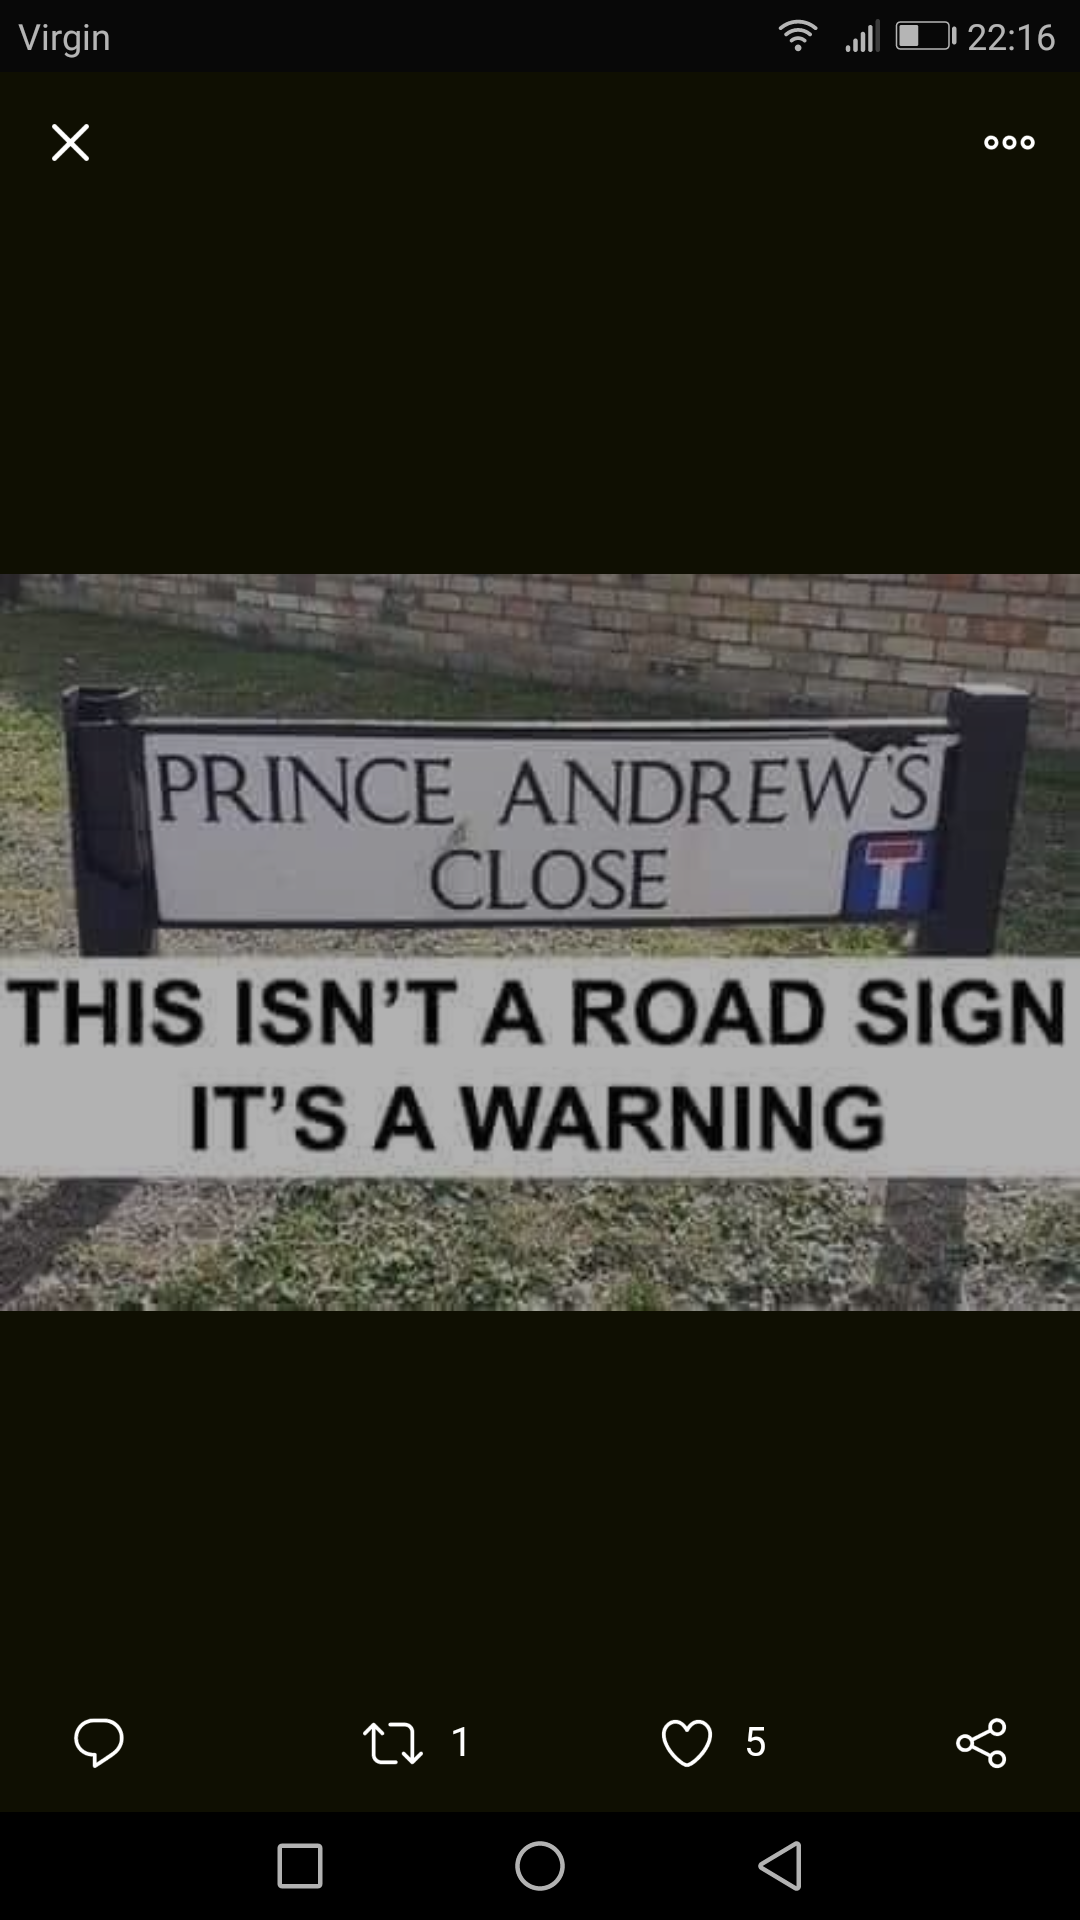 Watch out Prince Andrew's about